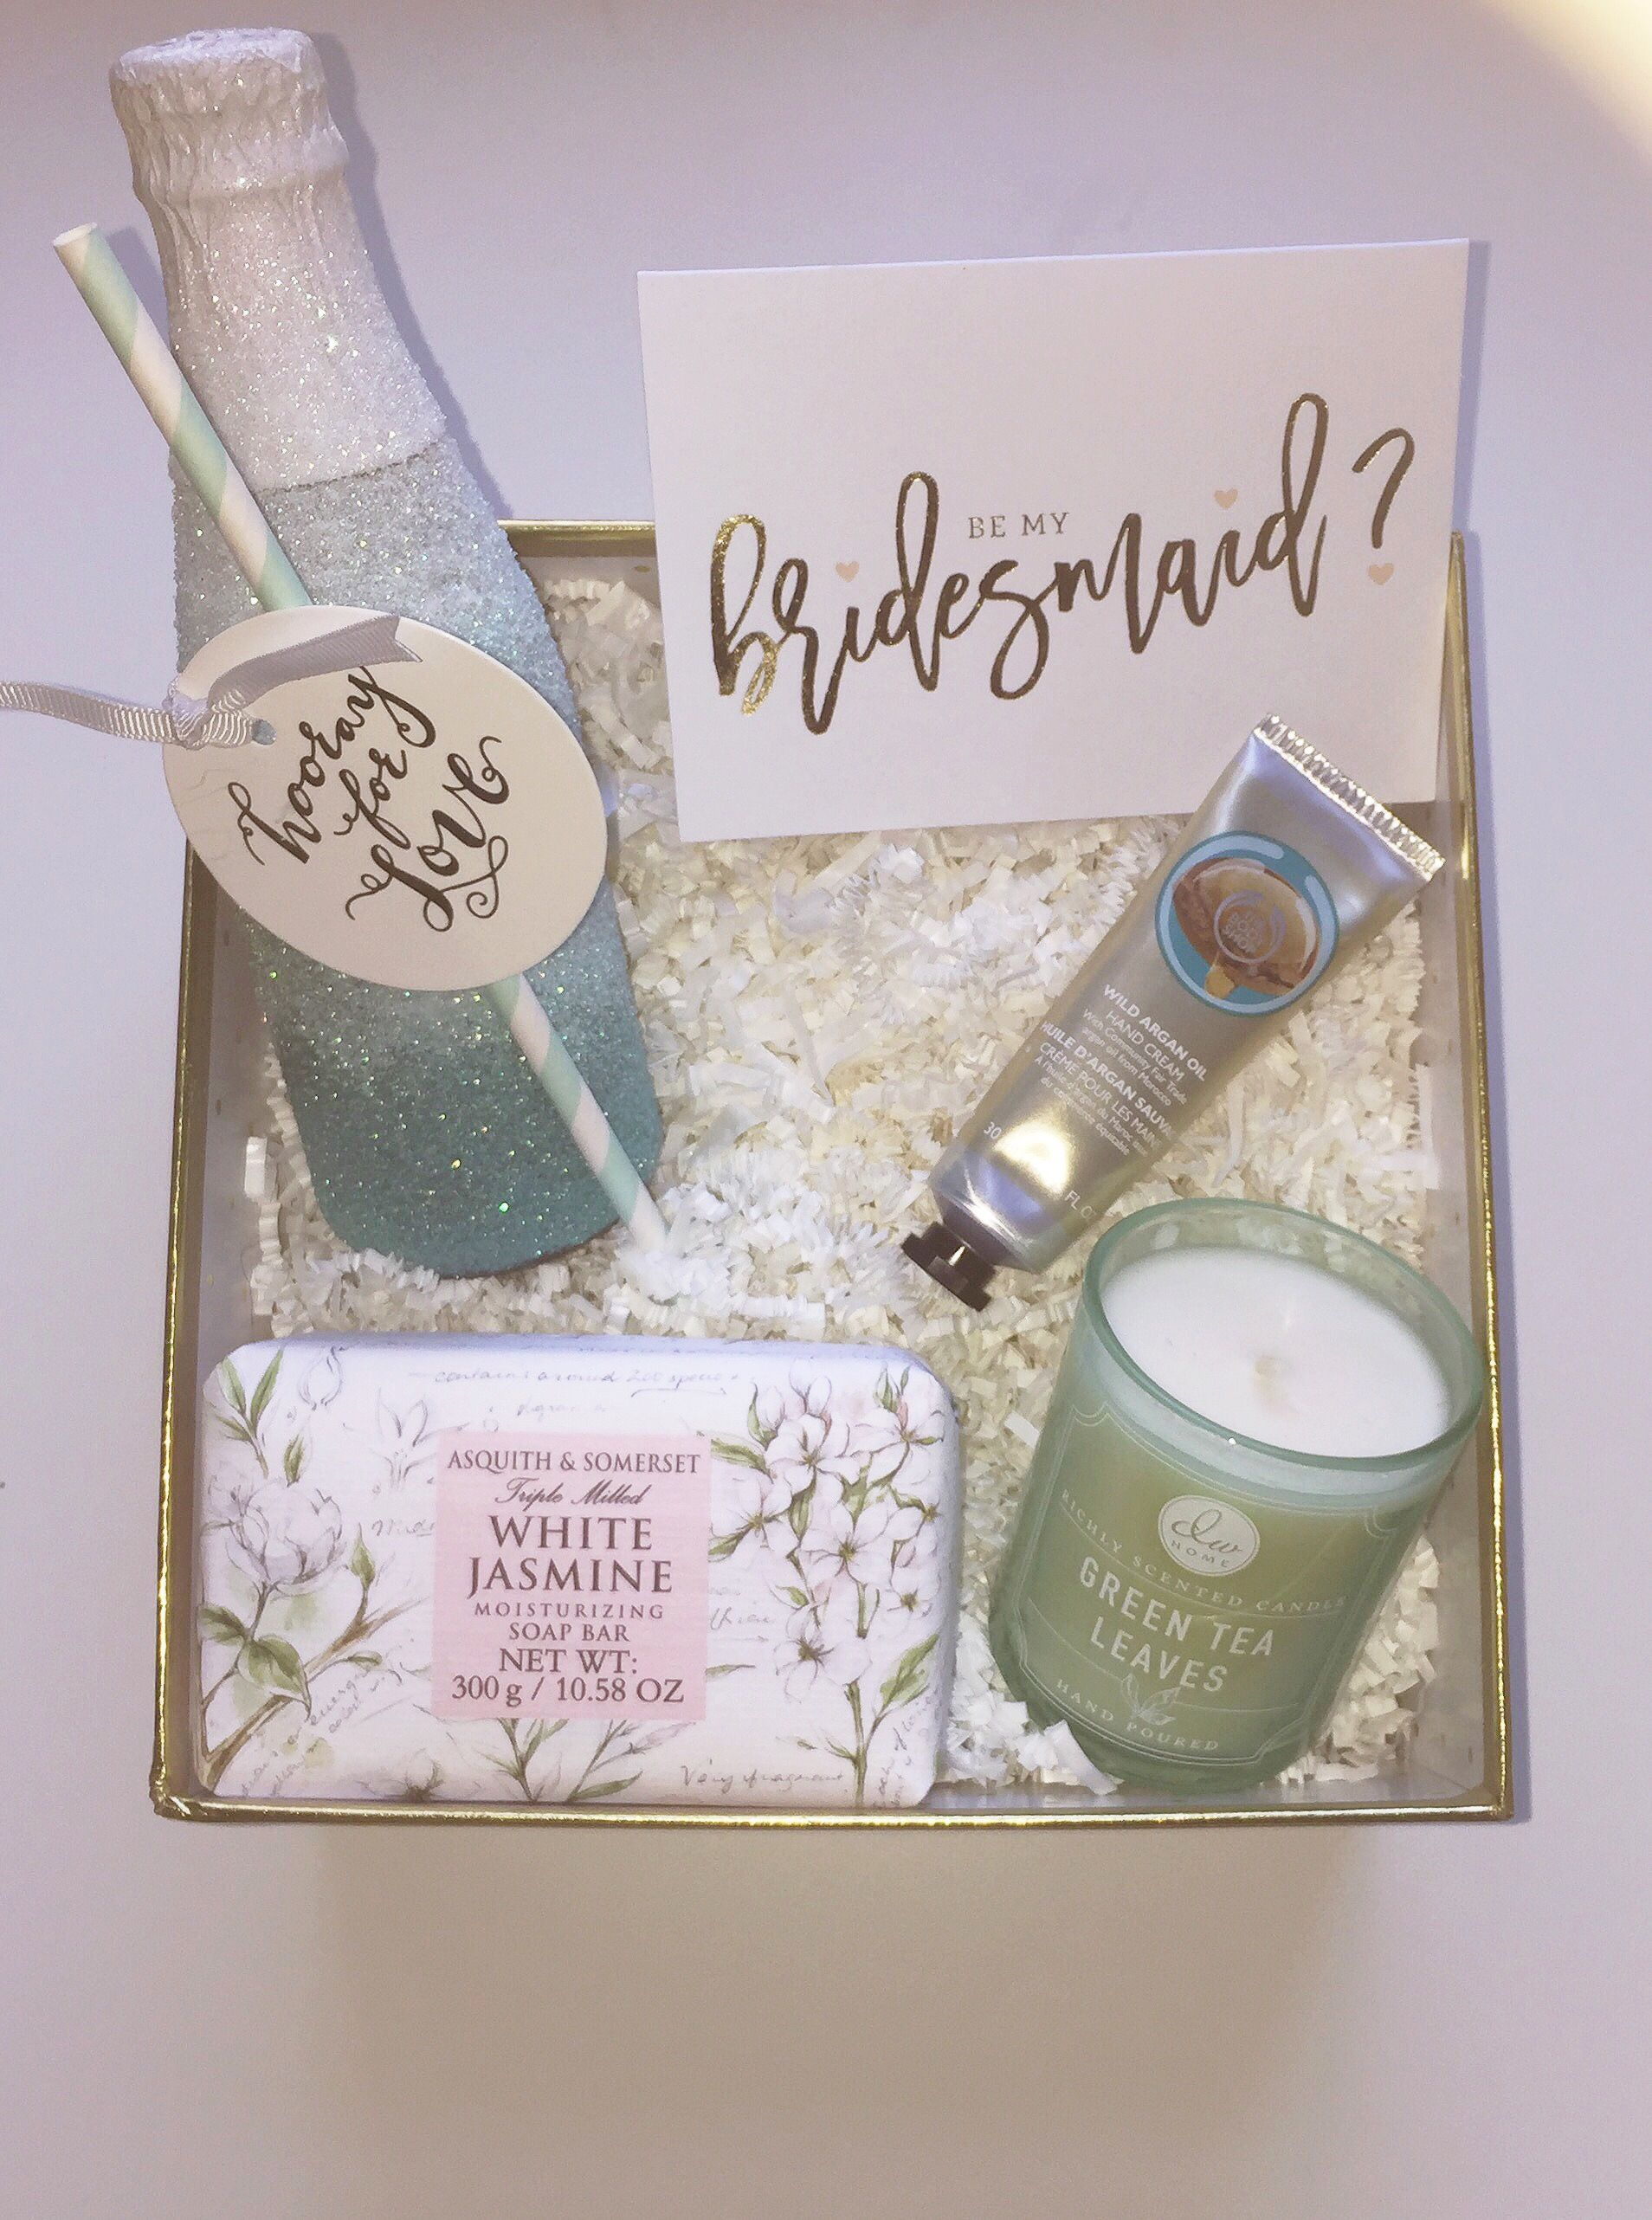 #Diy bridesmaid gifts I made. Glitter bottle & Diy bridesmaid gifts I made. Glitter bottle | Be My Bridesmaid ...